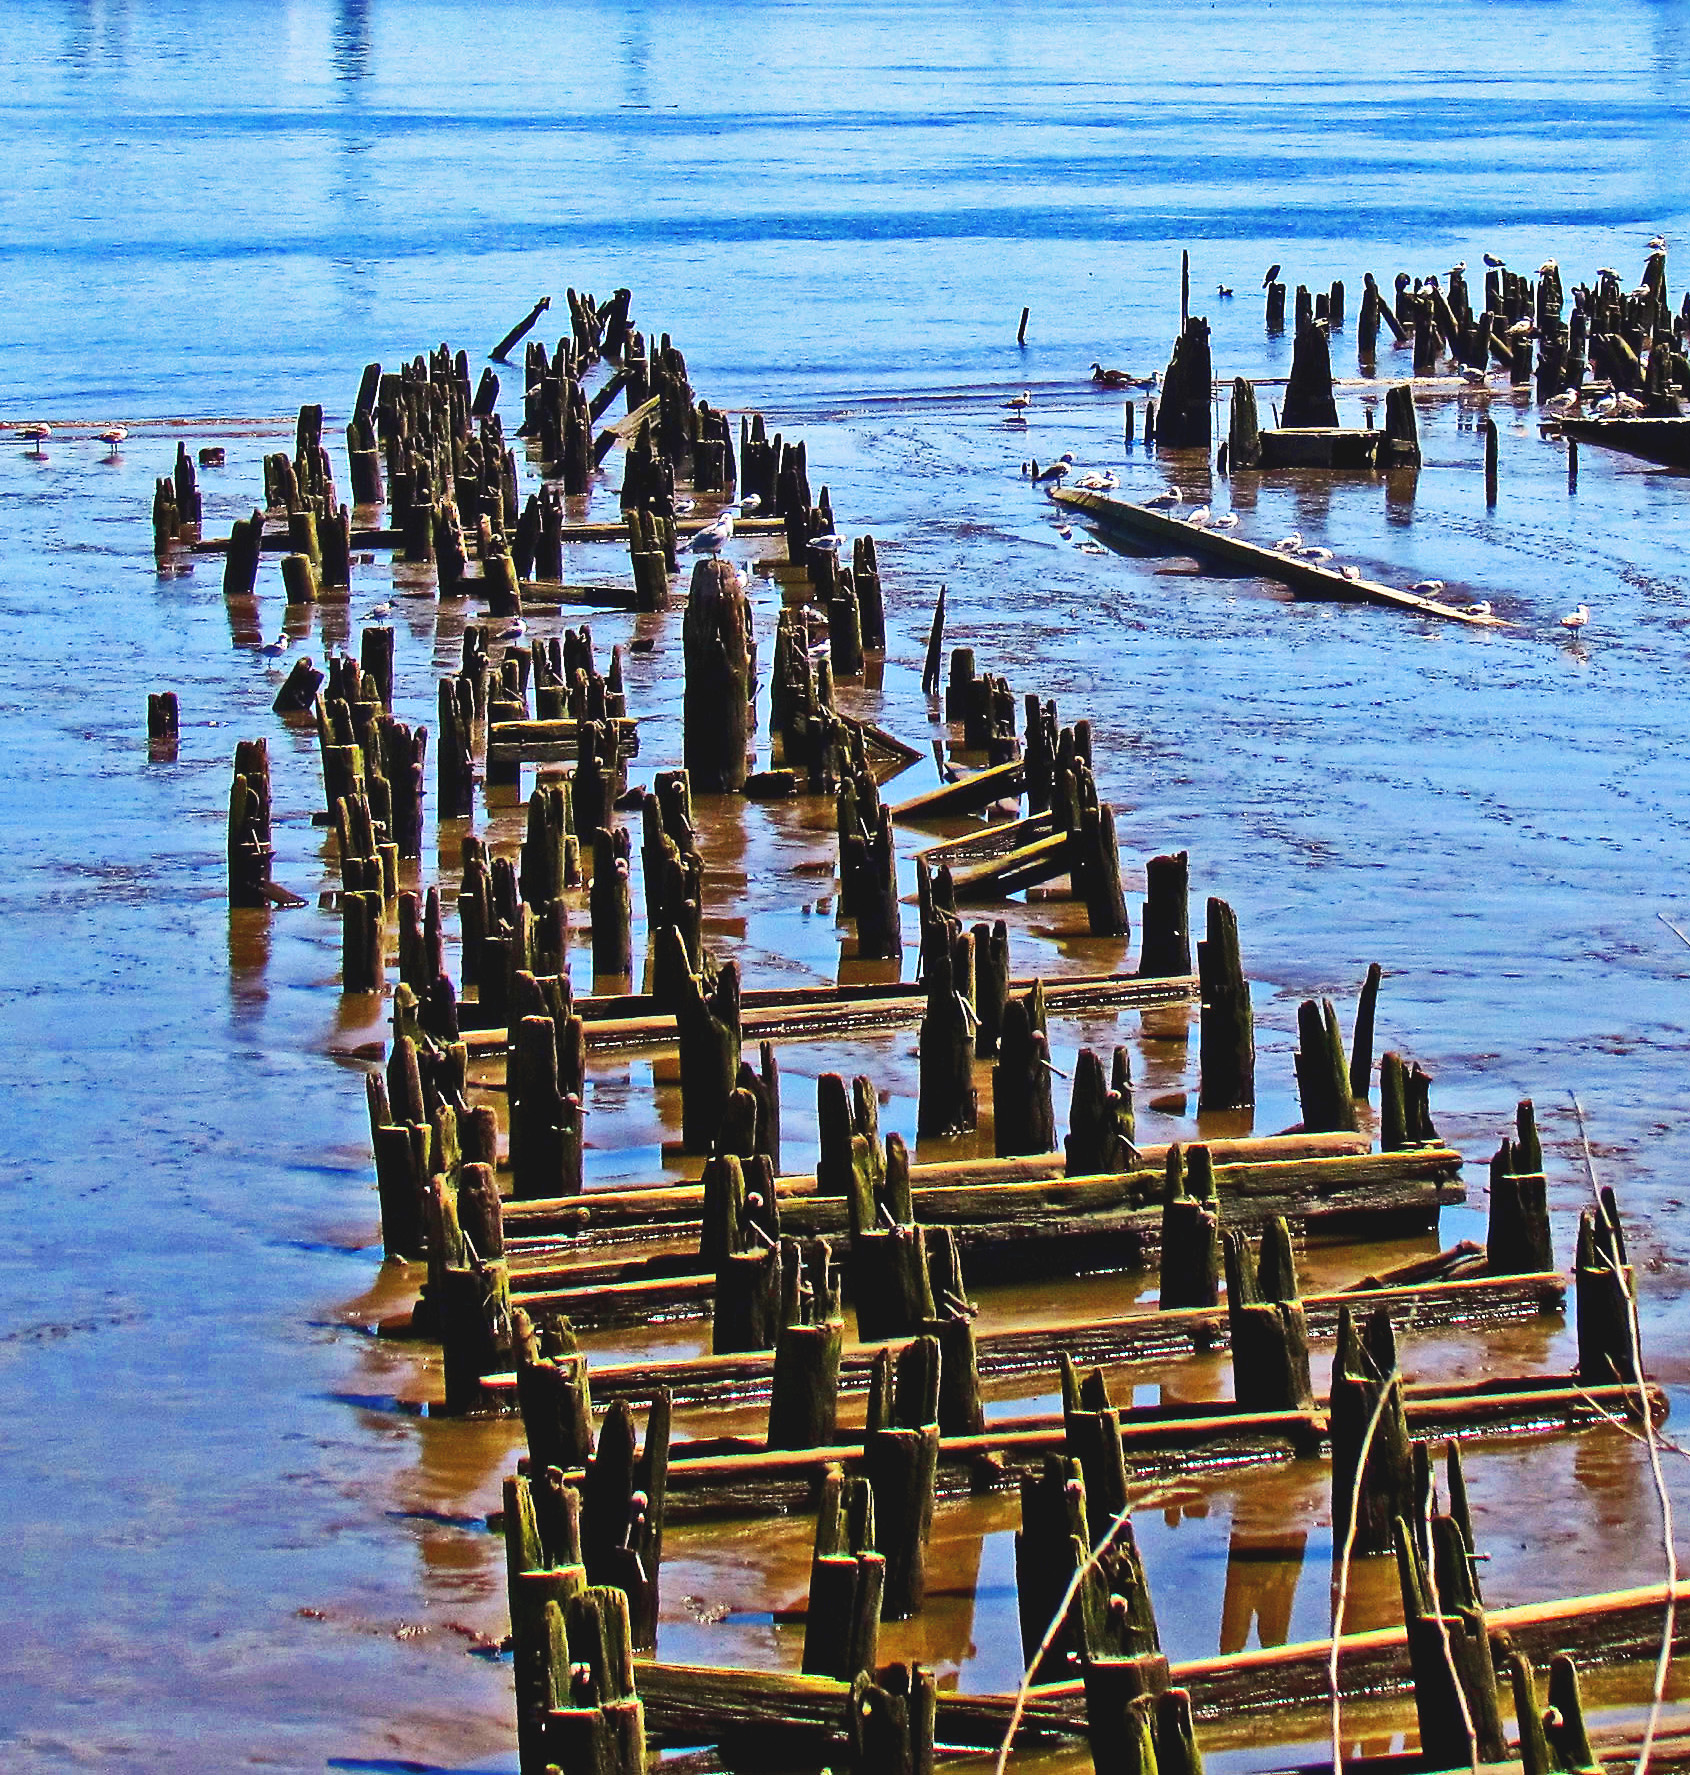 Remains Of Old Docks & Piers